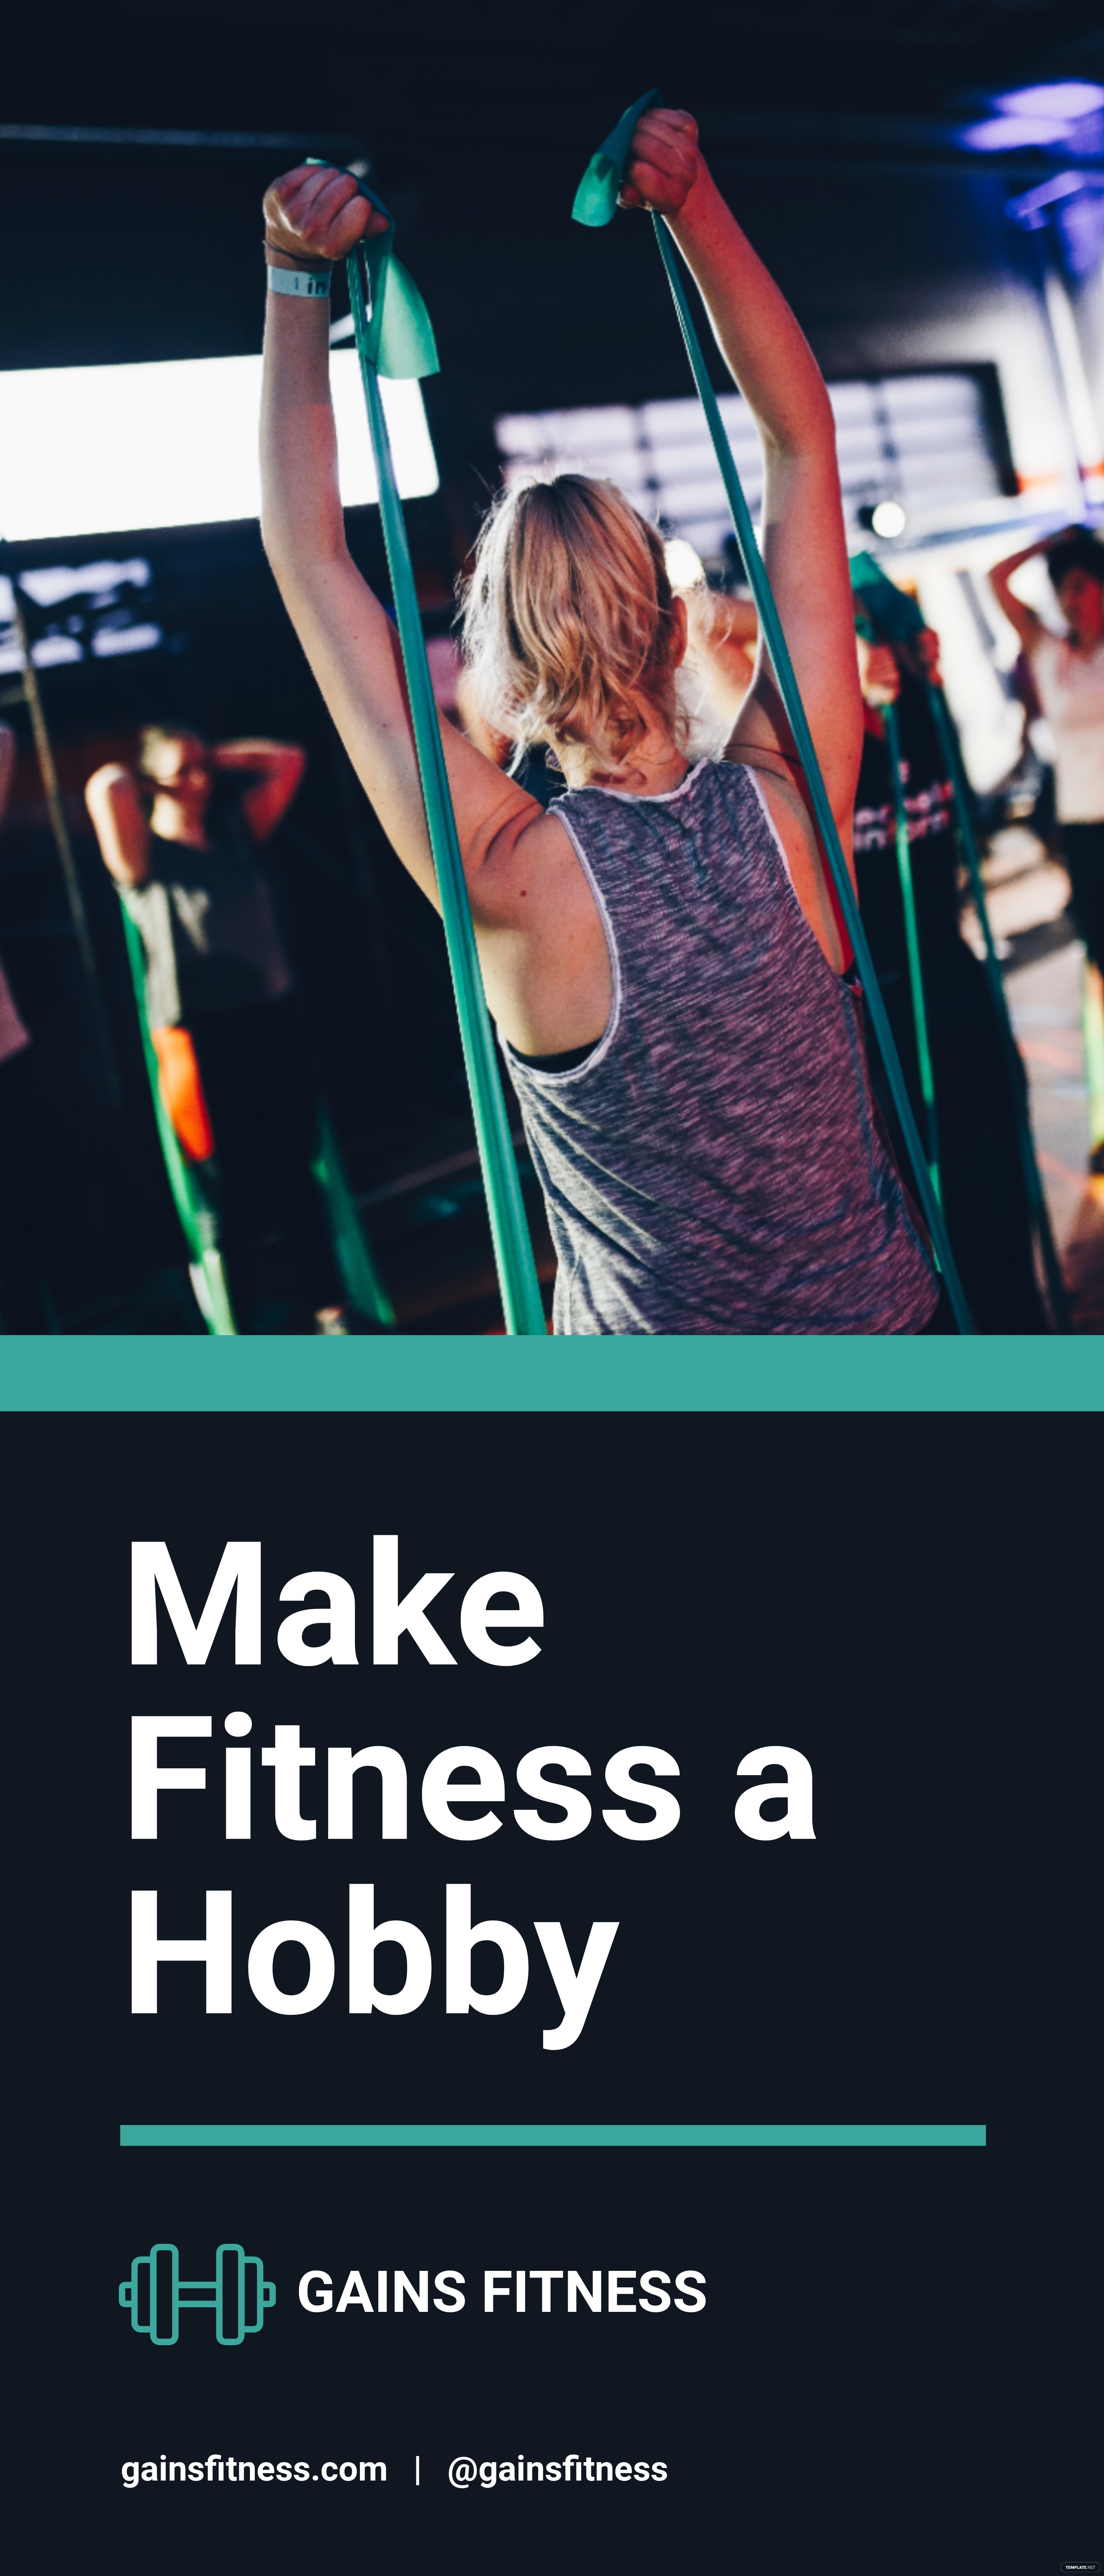 Fitness Gym Roll Up Banner Template.jpe